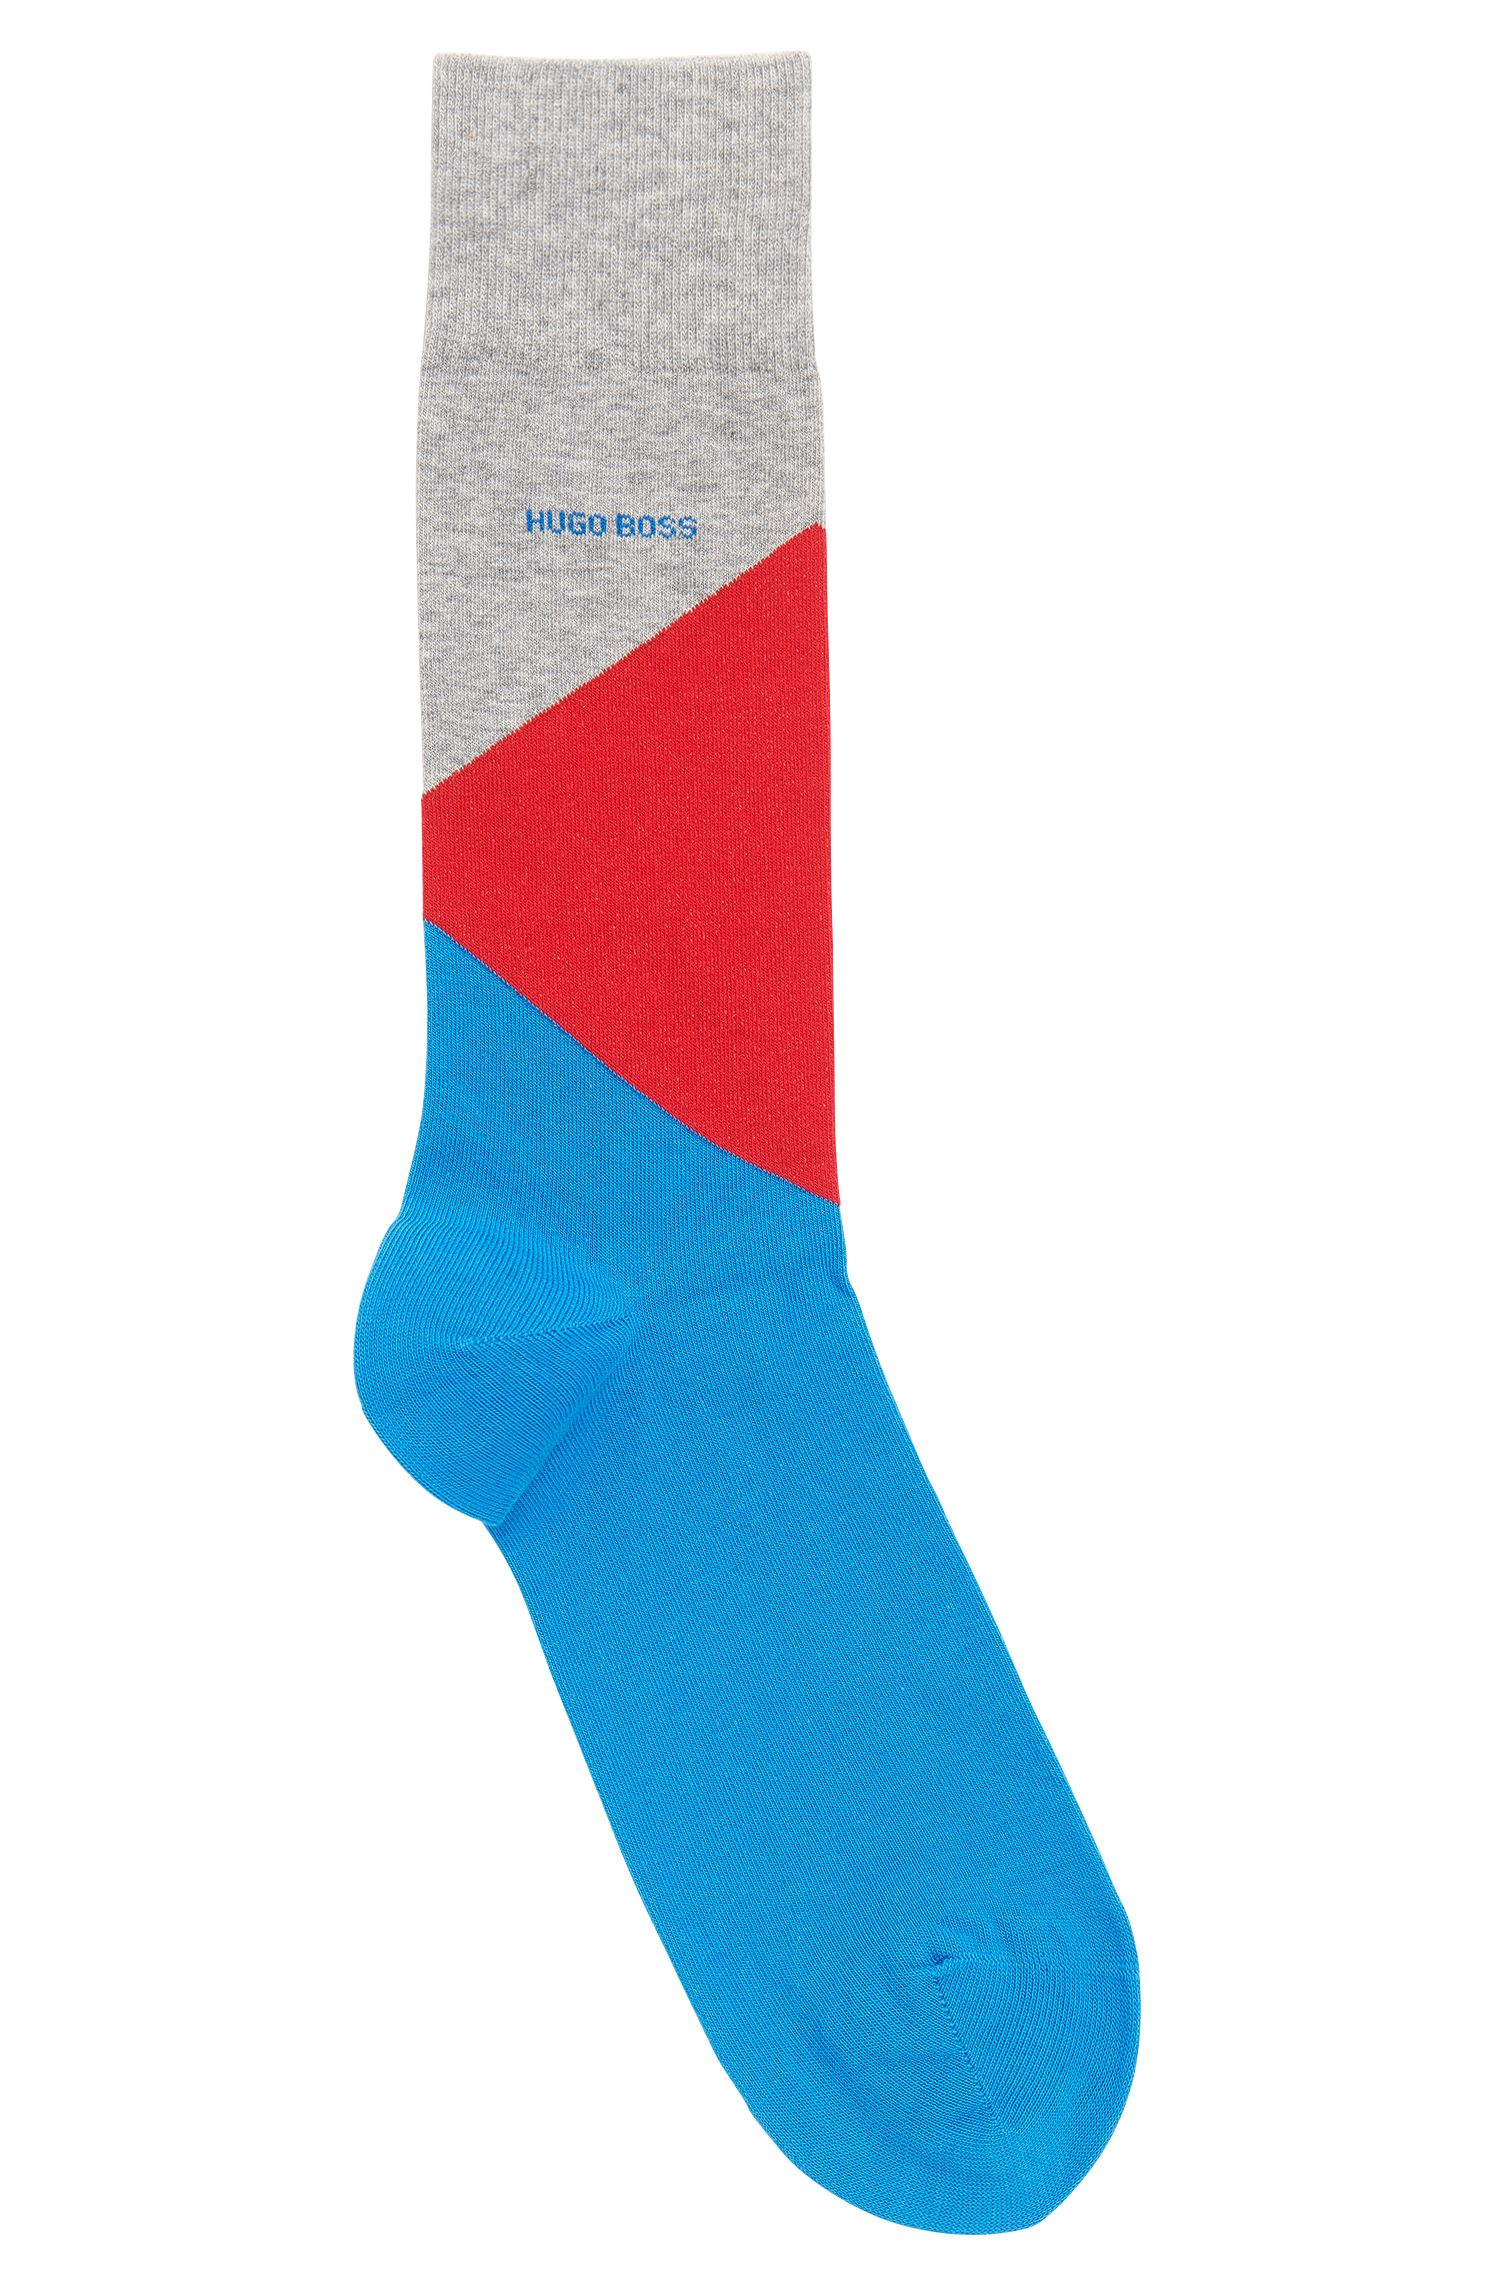 Colourblock socks blended with combed cotton